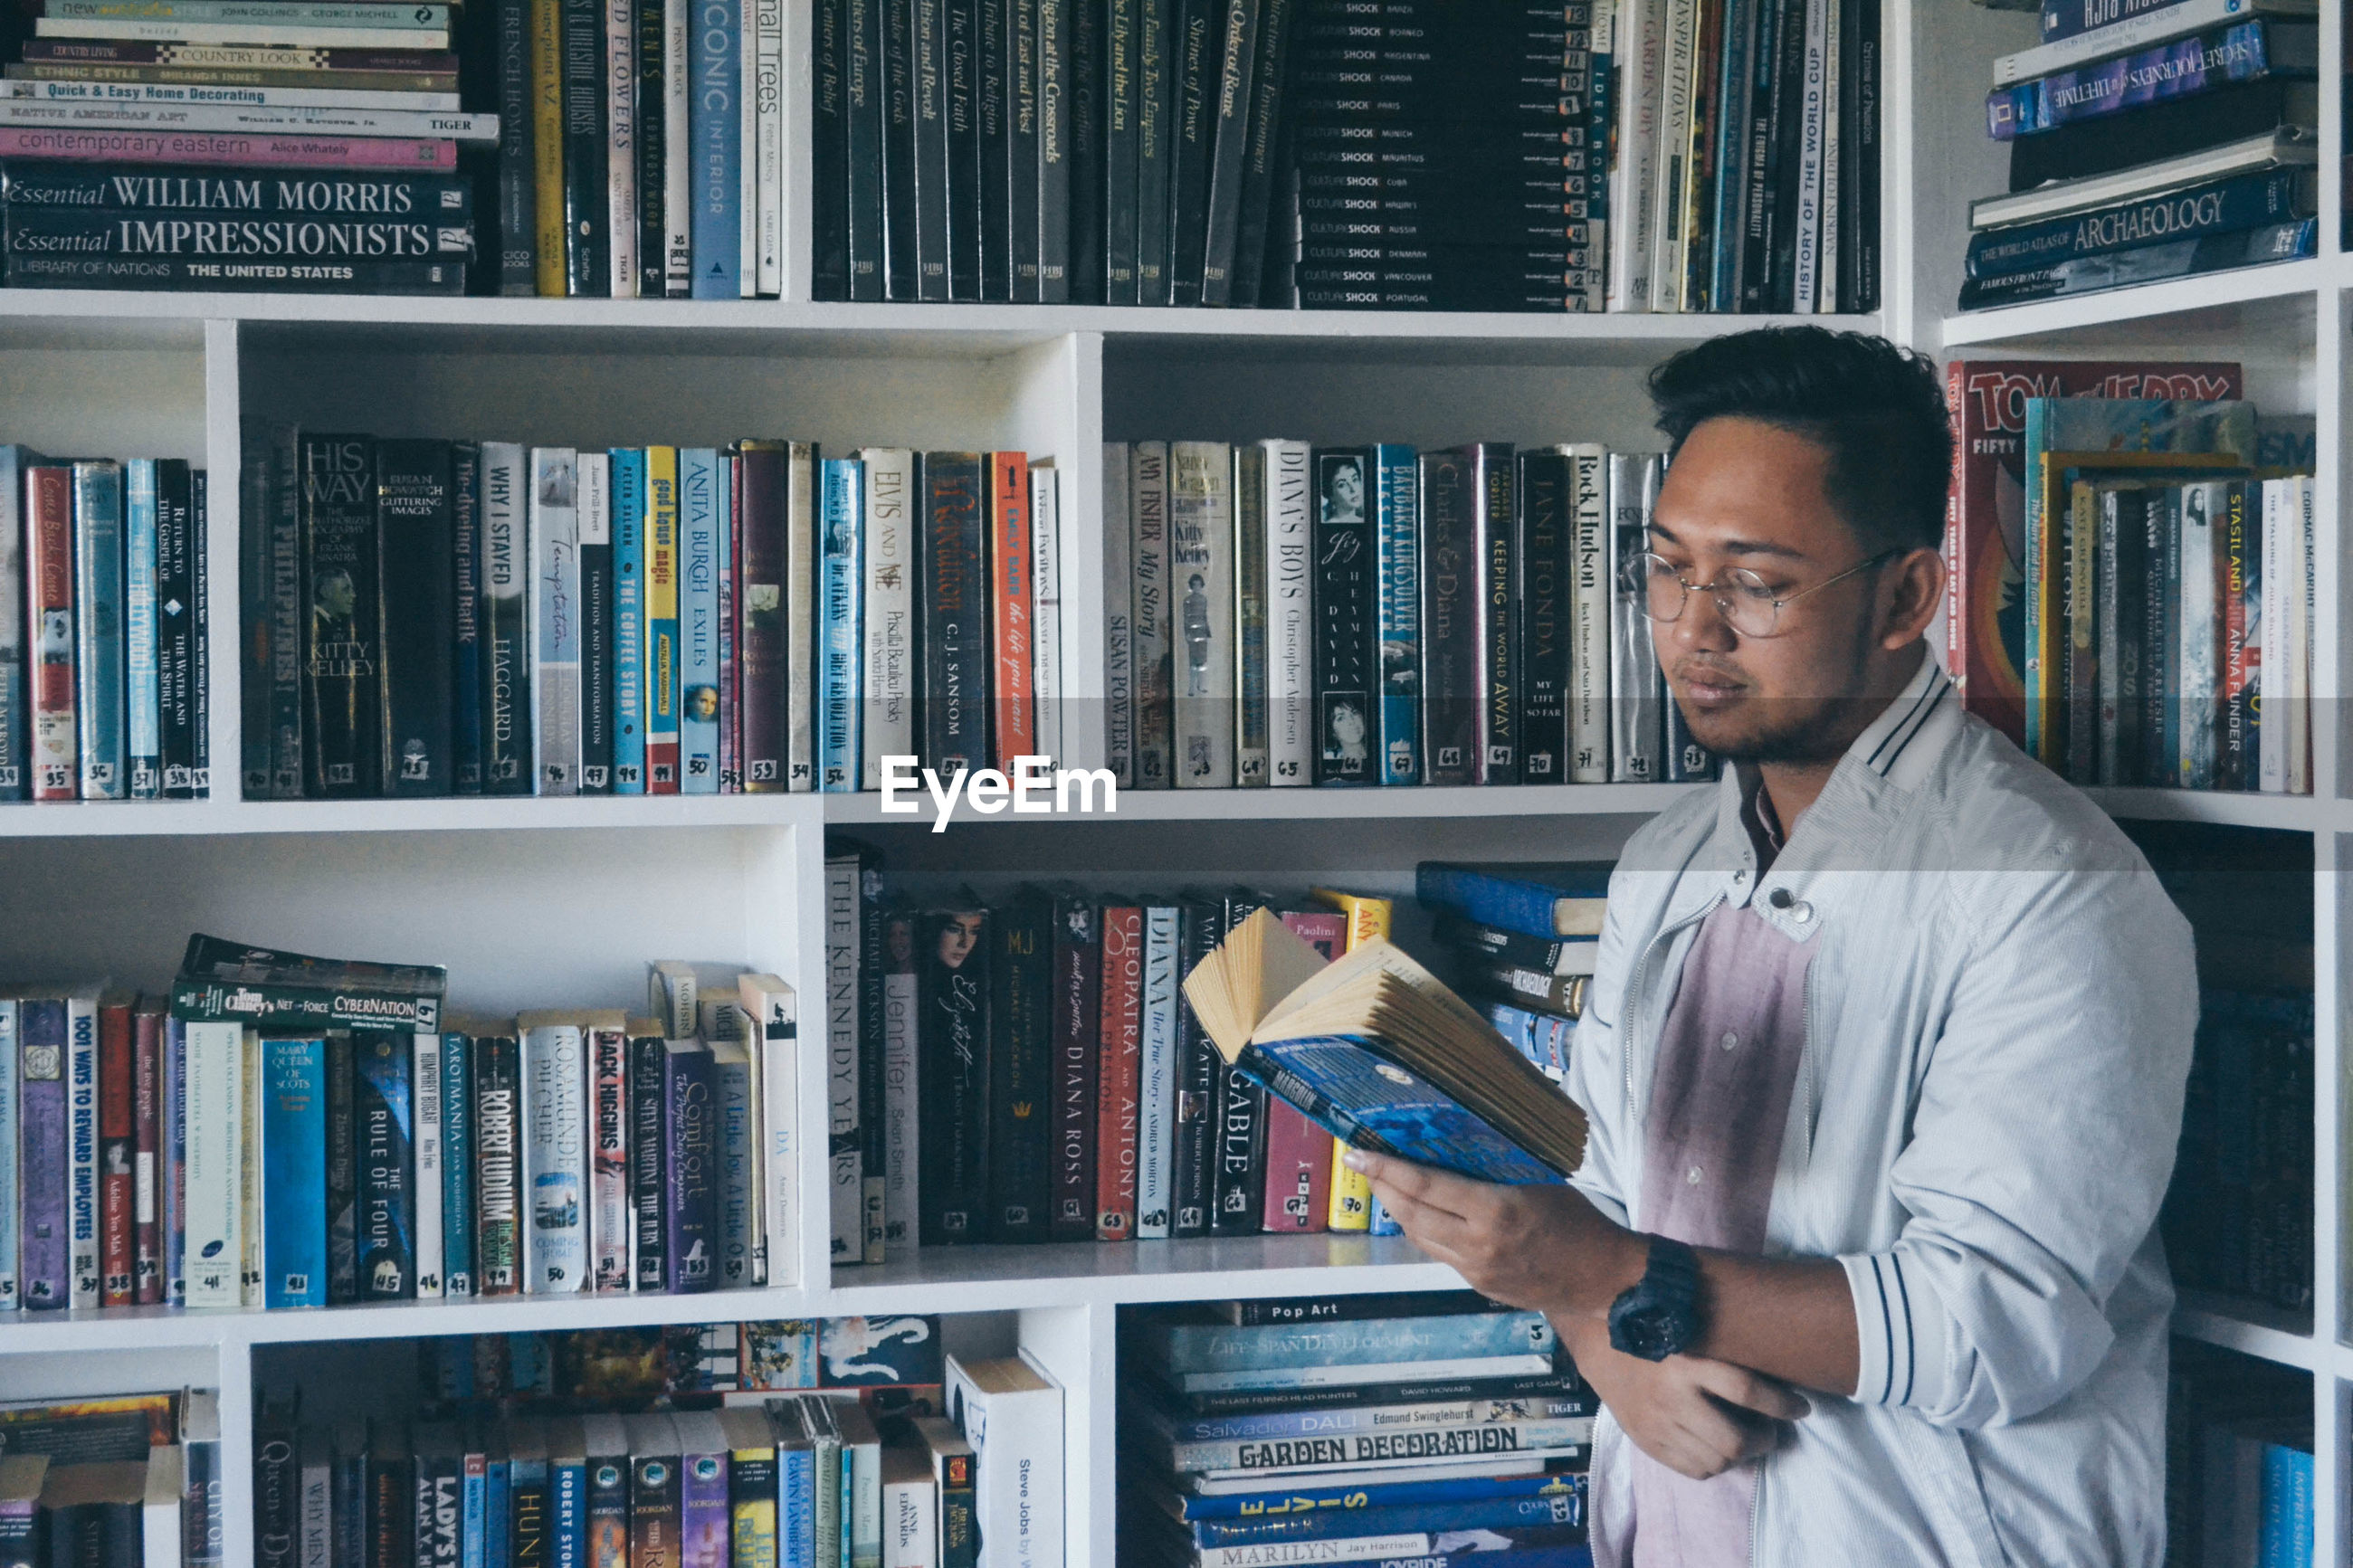 Young man reading book against shelves